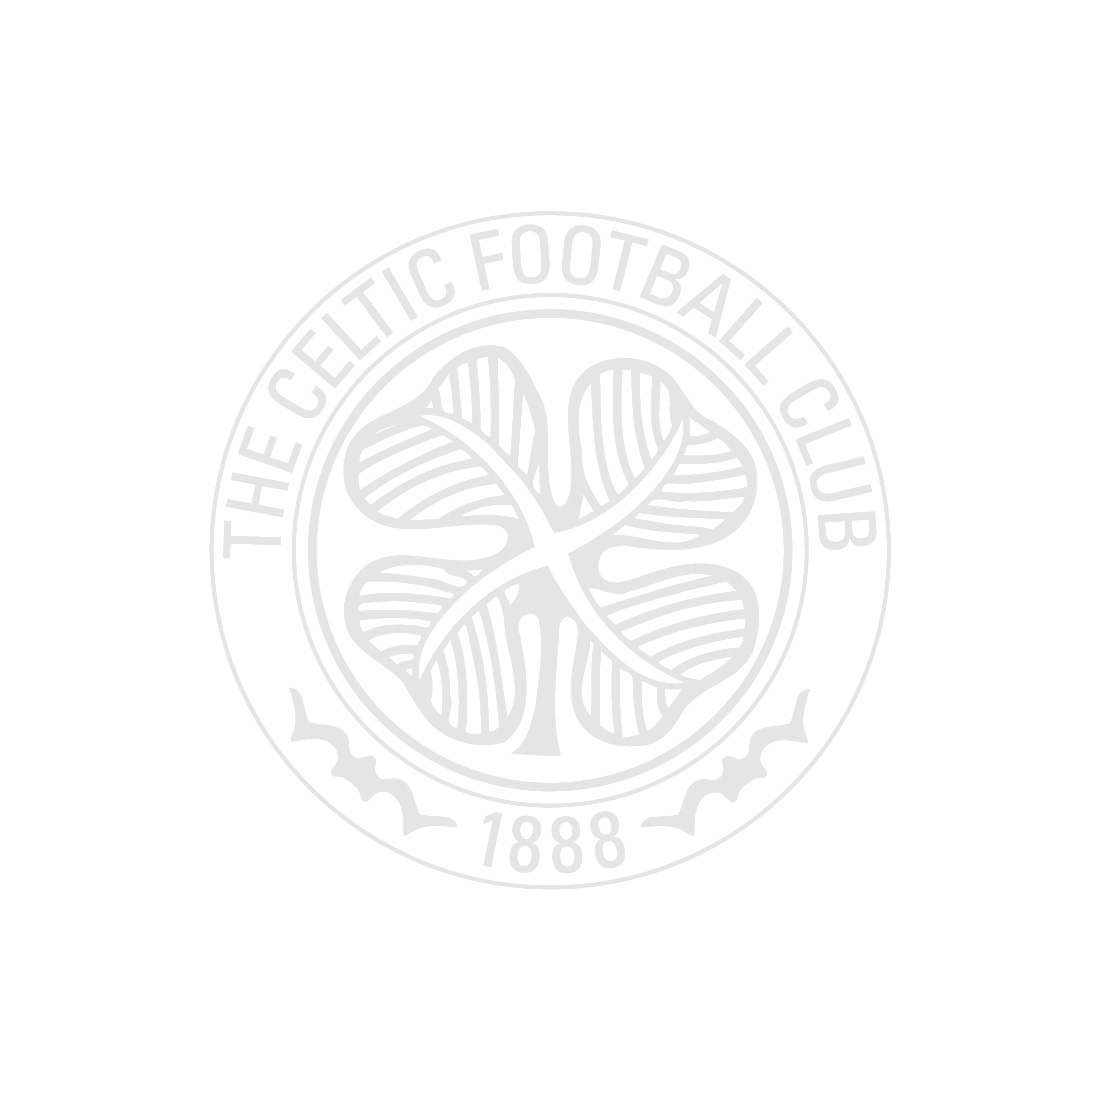 1988 Centenary Pin Badge